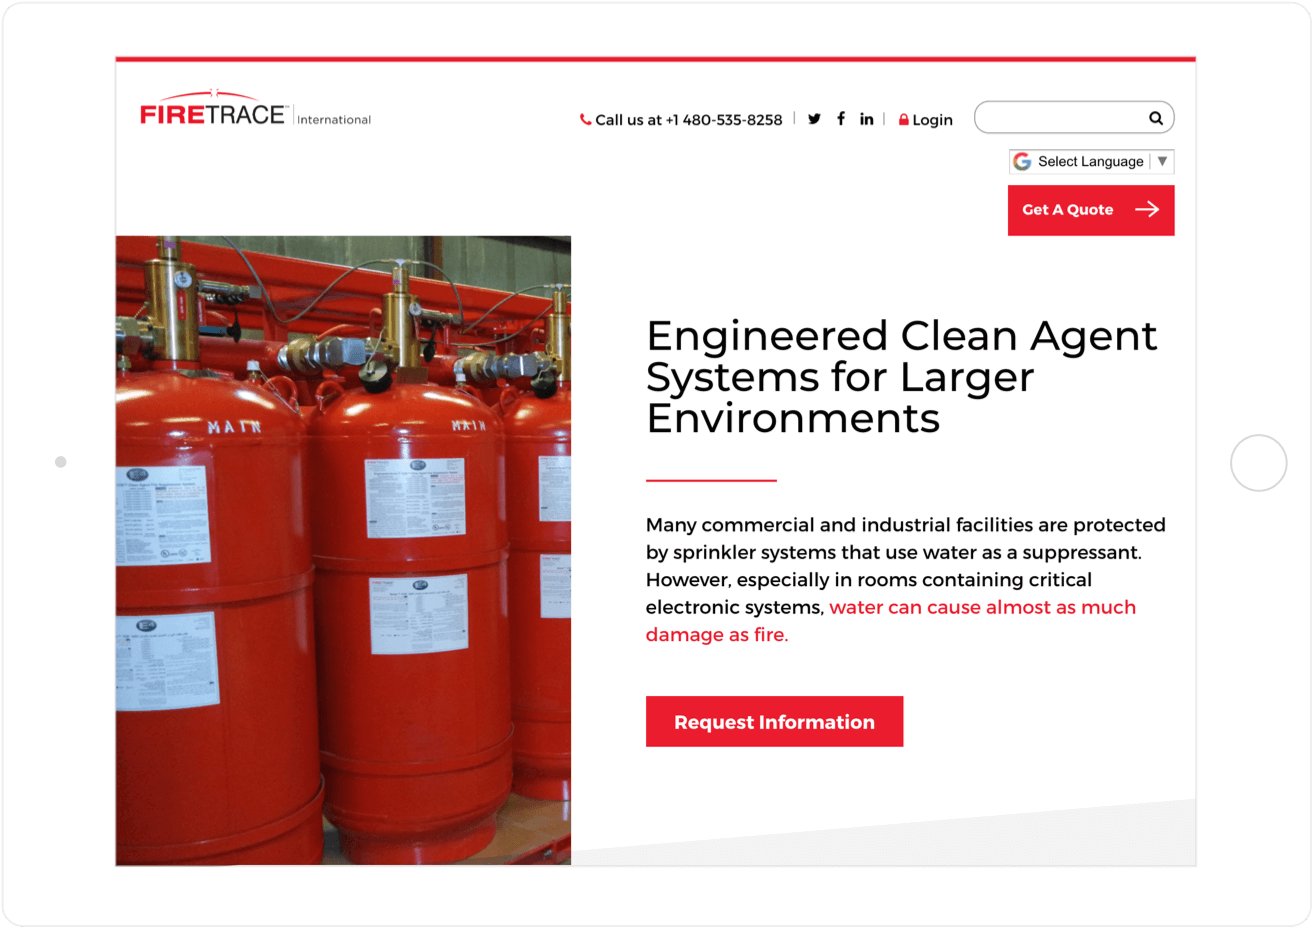 Firetrace cleaner, brighter website